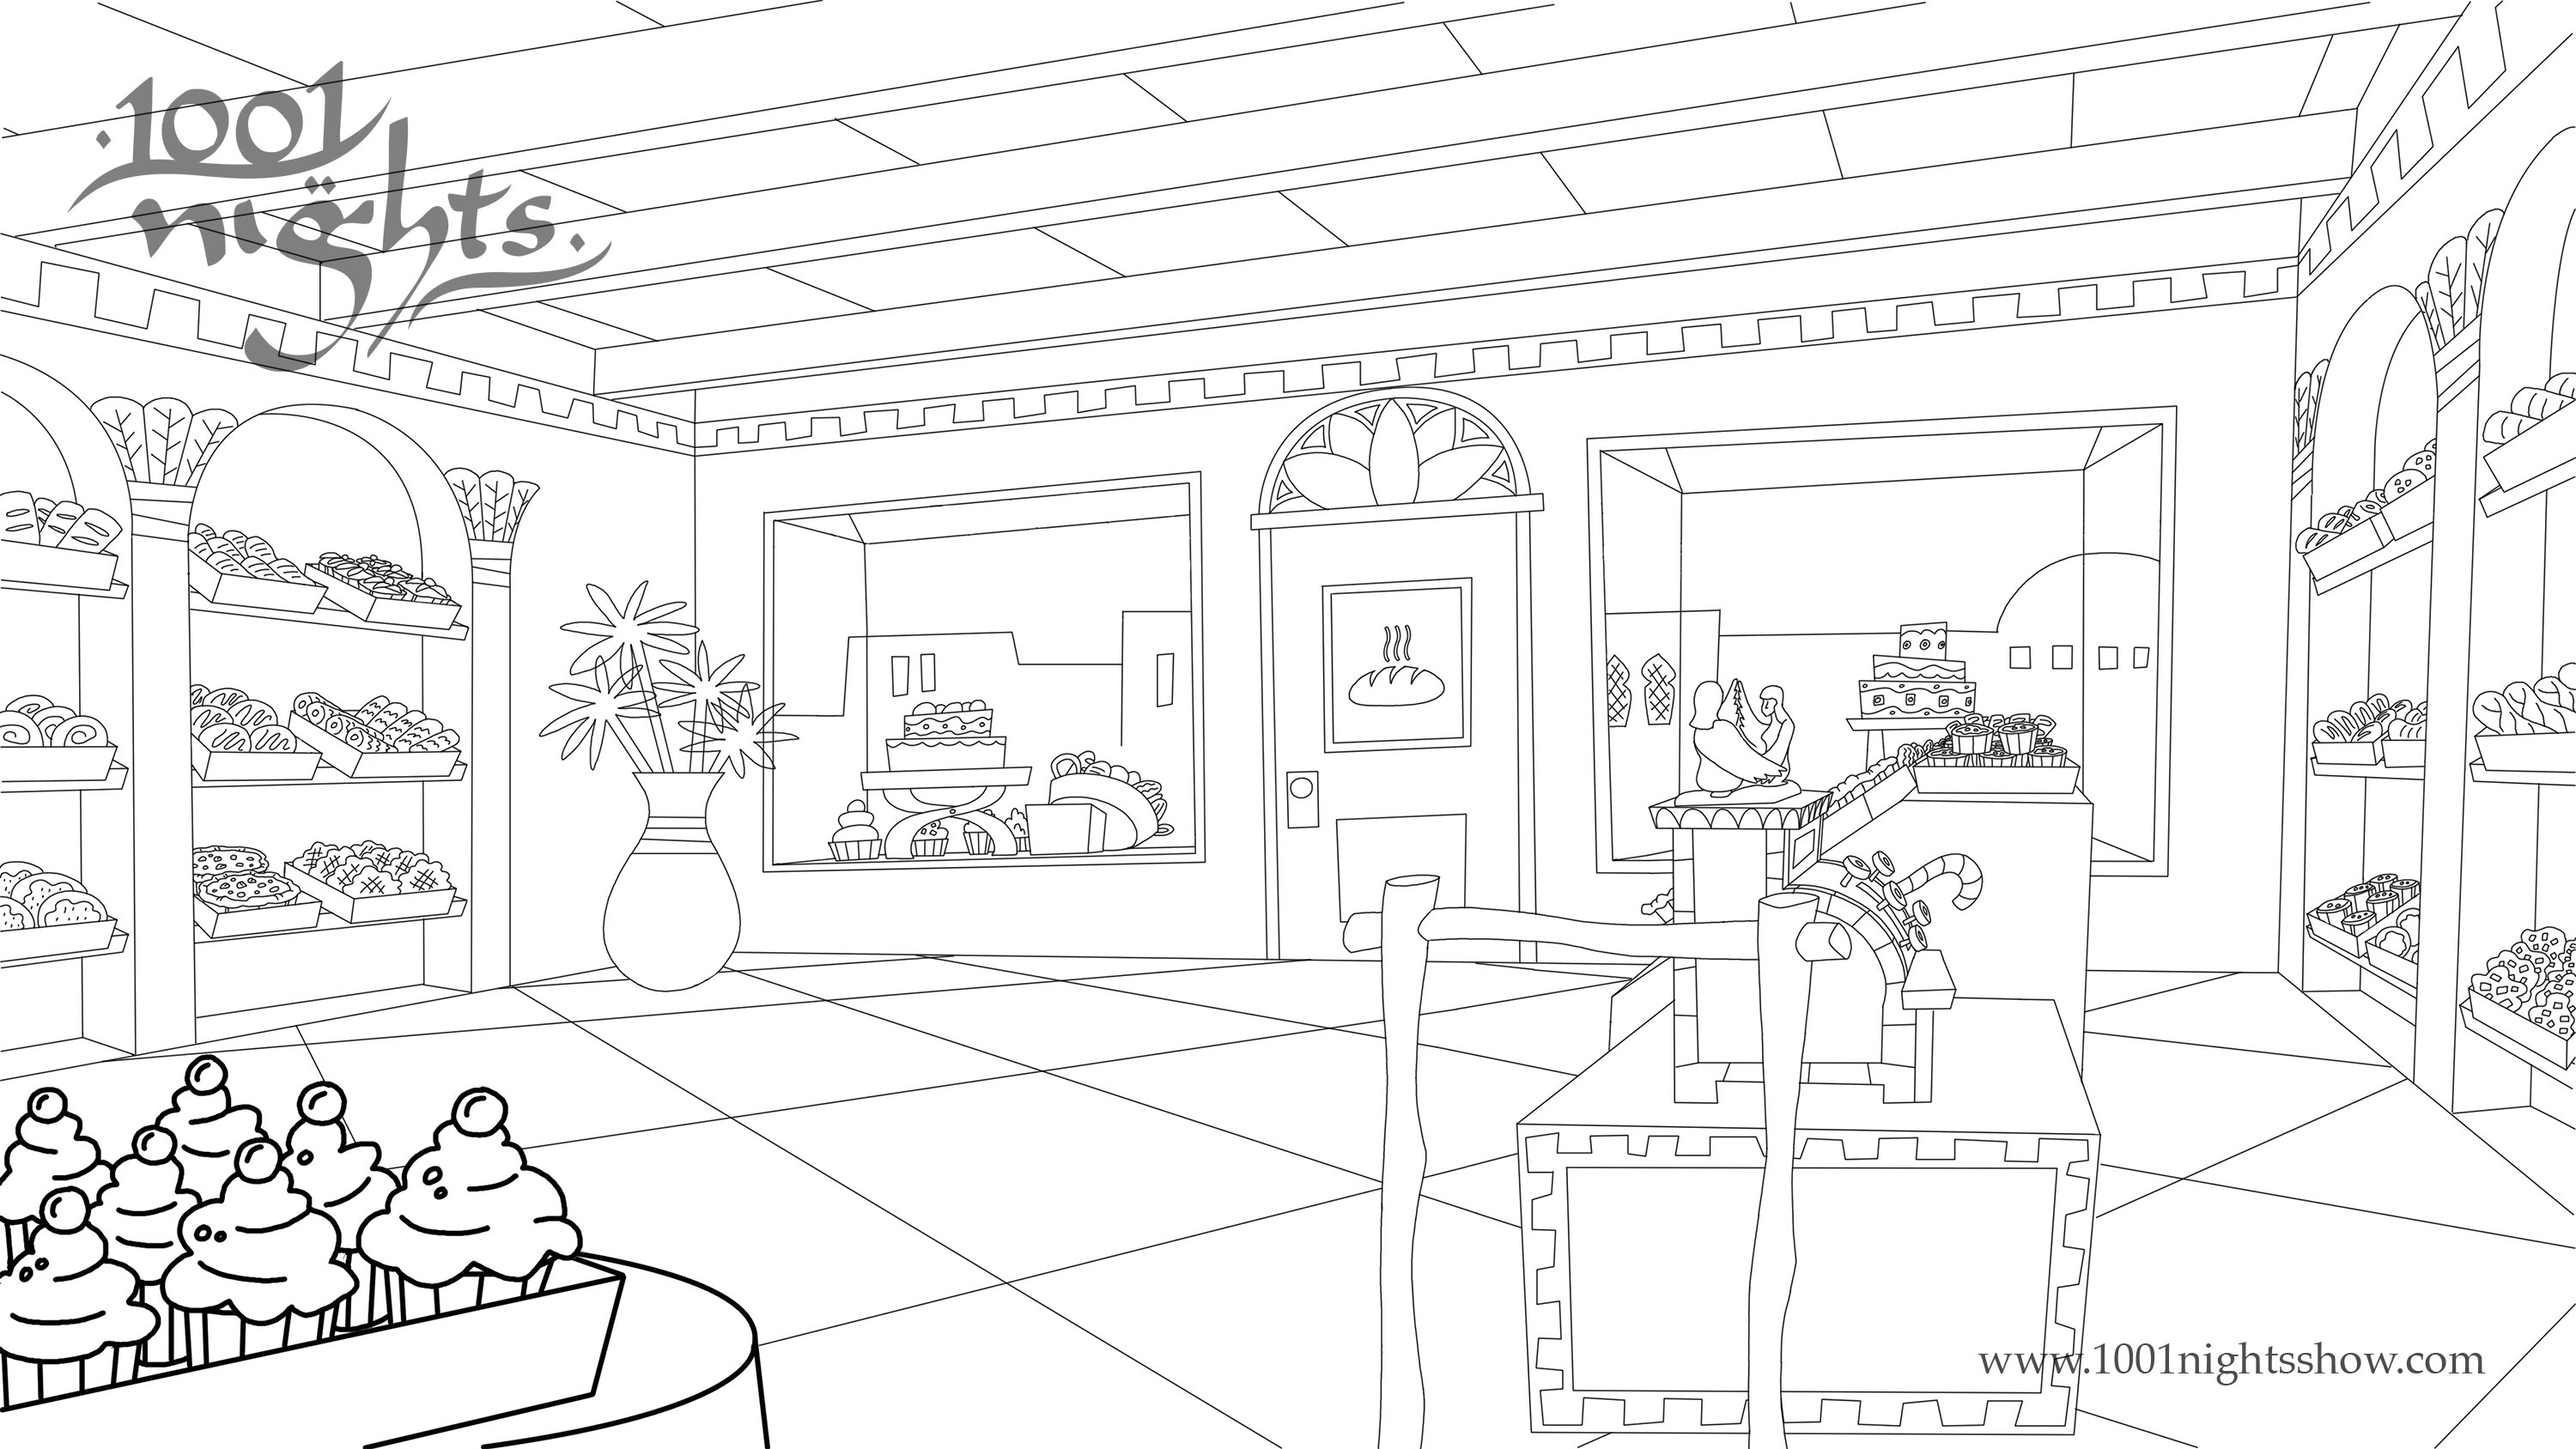 1001 nights Bakery Coloring Pages for Adults  Coloring Pages Bakery